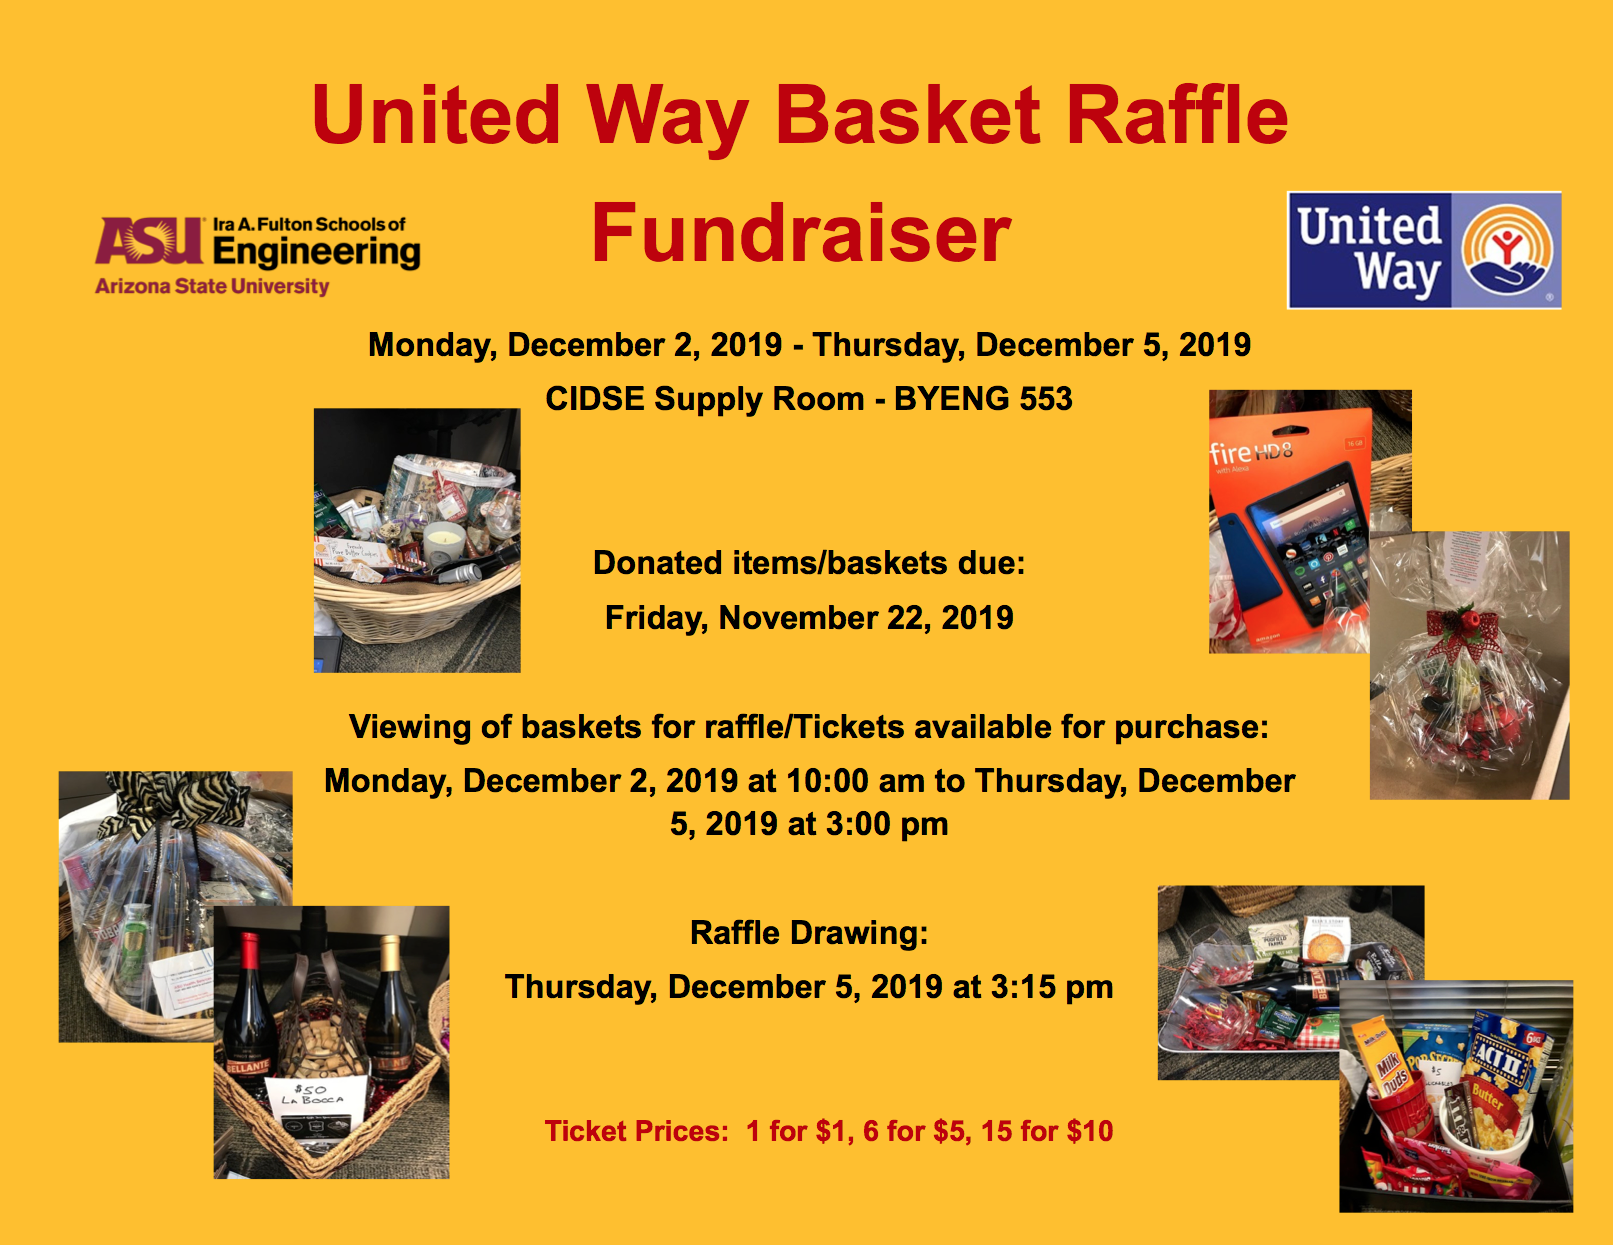 United Way Basket Raffle Fundraiser flyer